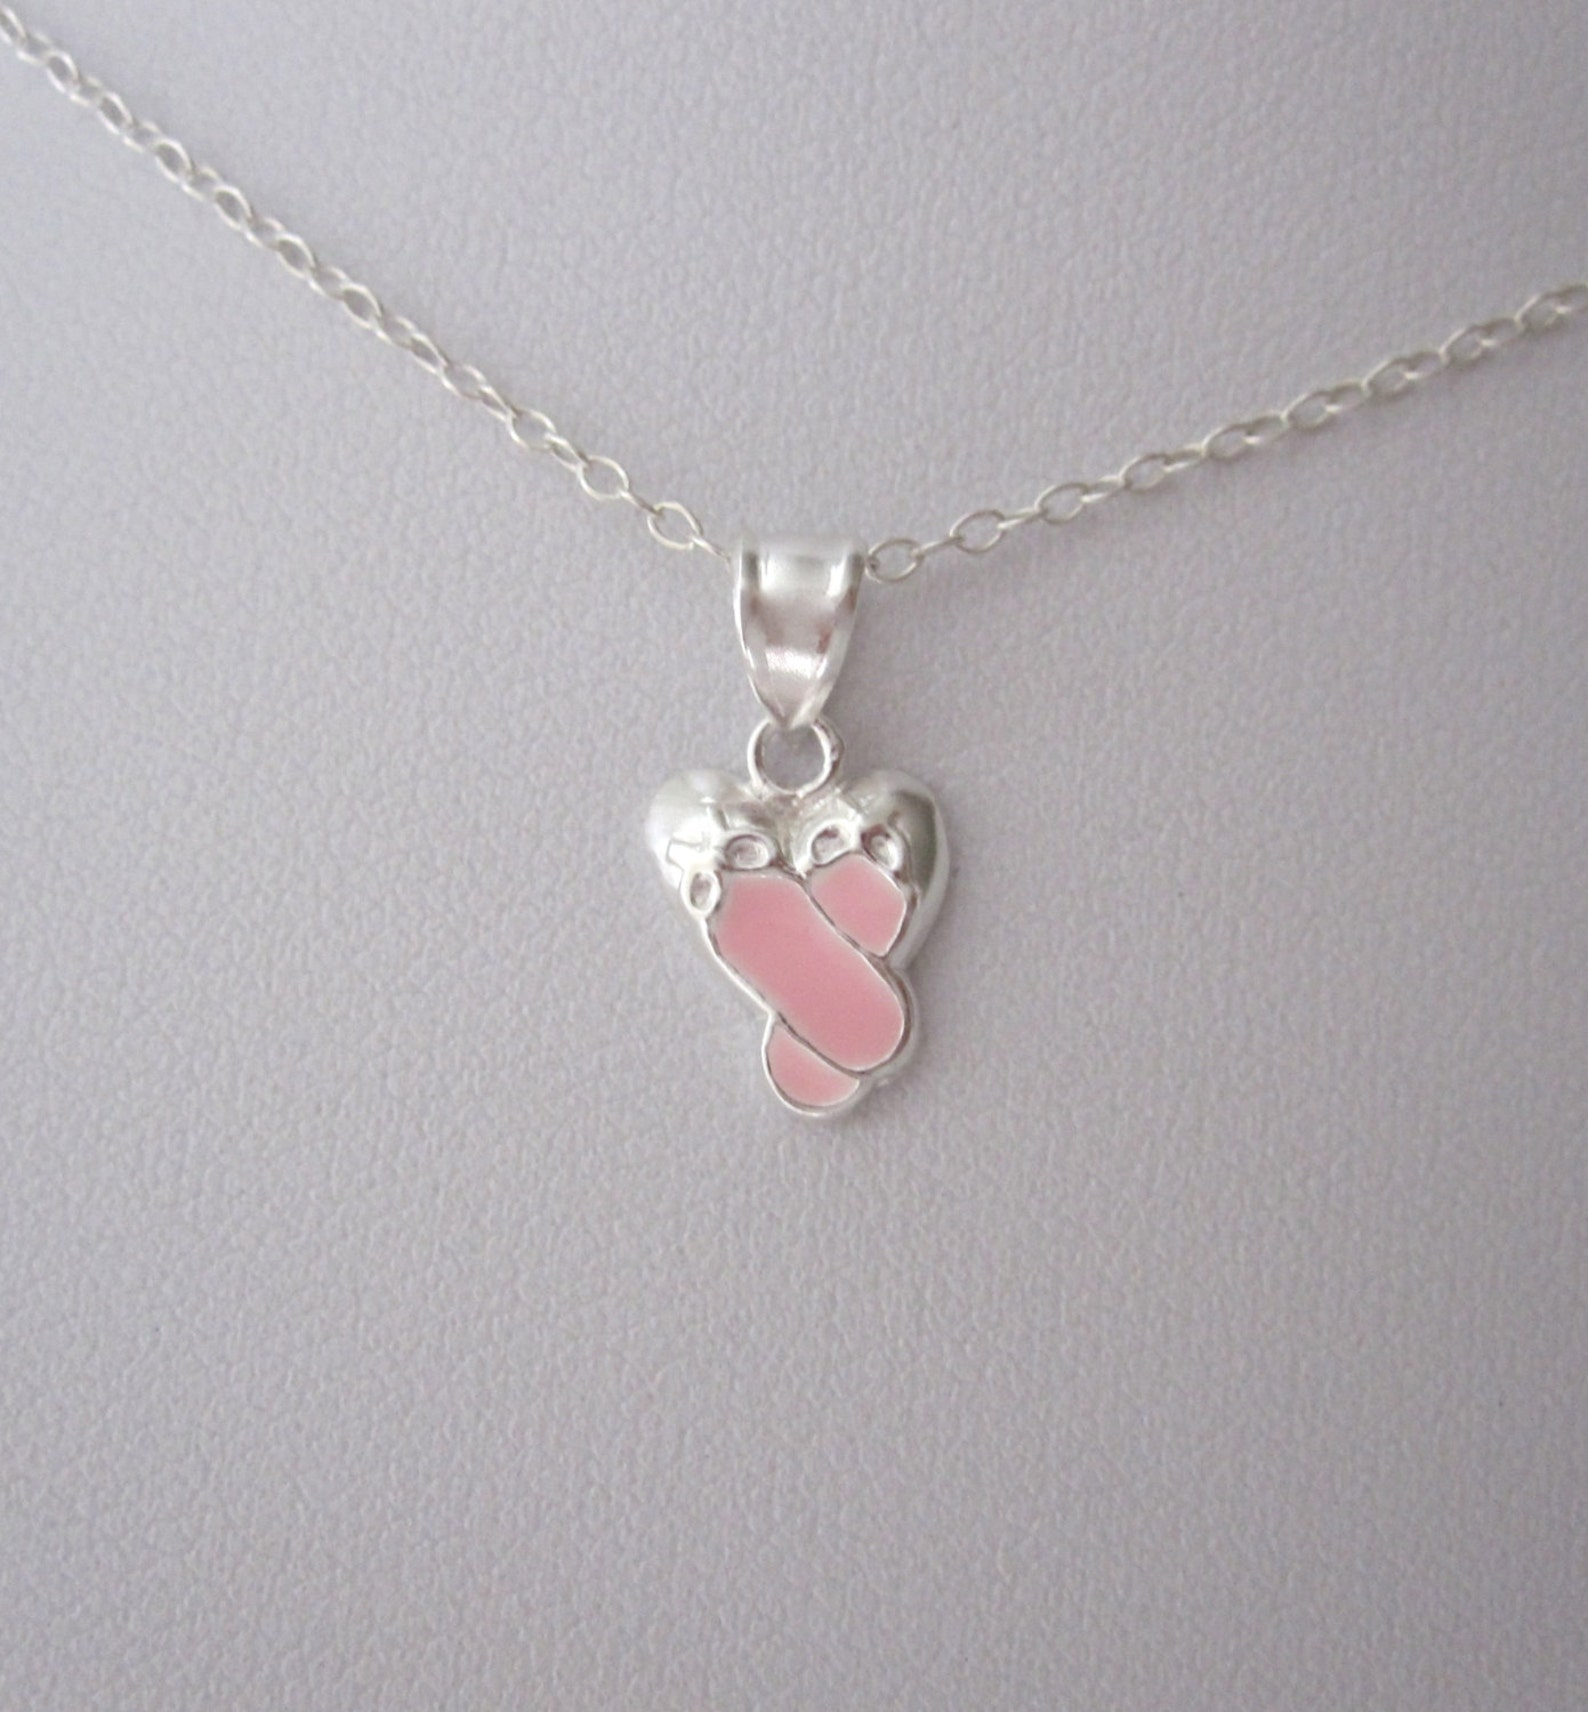 925 sterling silver pink enamel ballerina ballet shoes slippers pendant with necklace chain